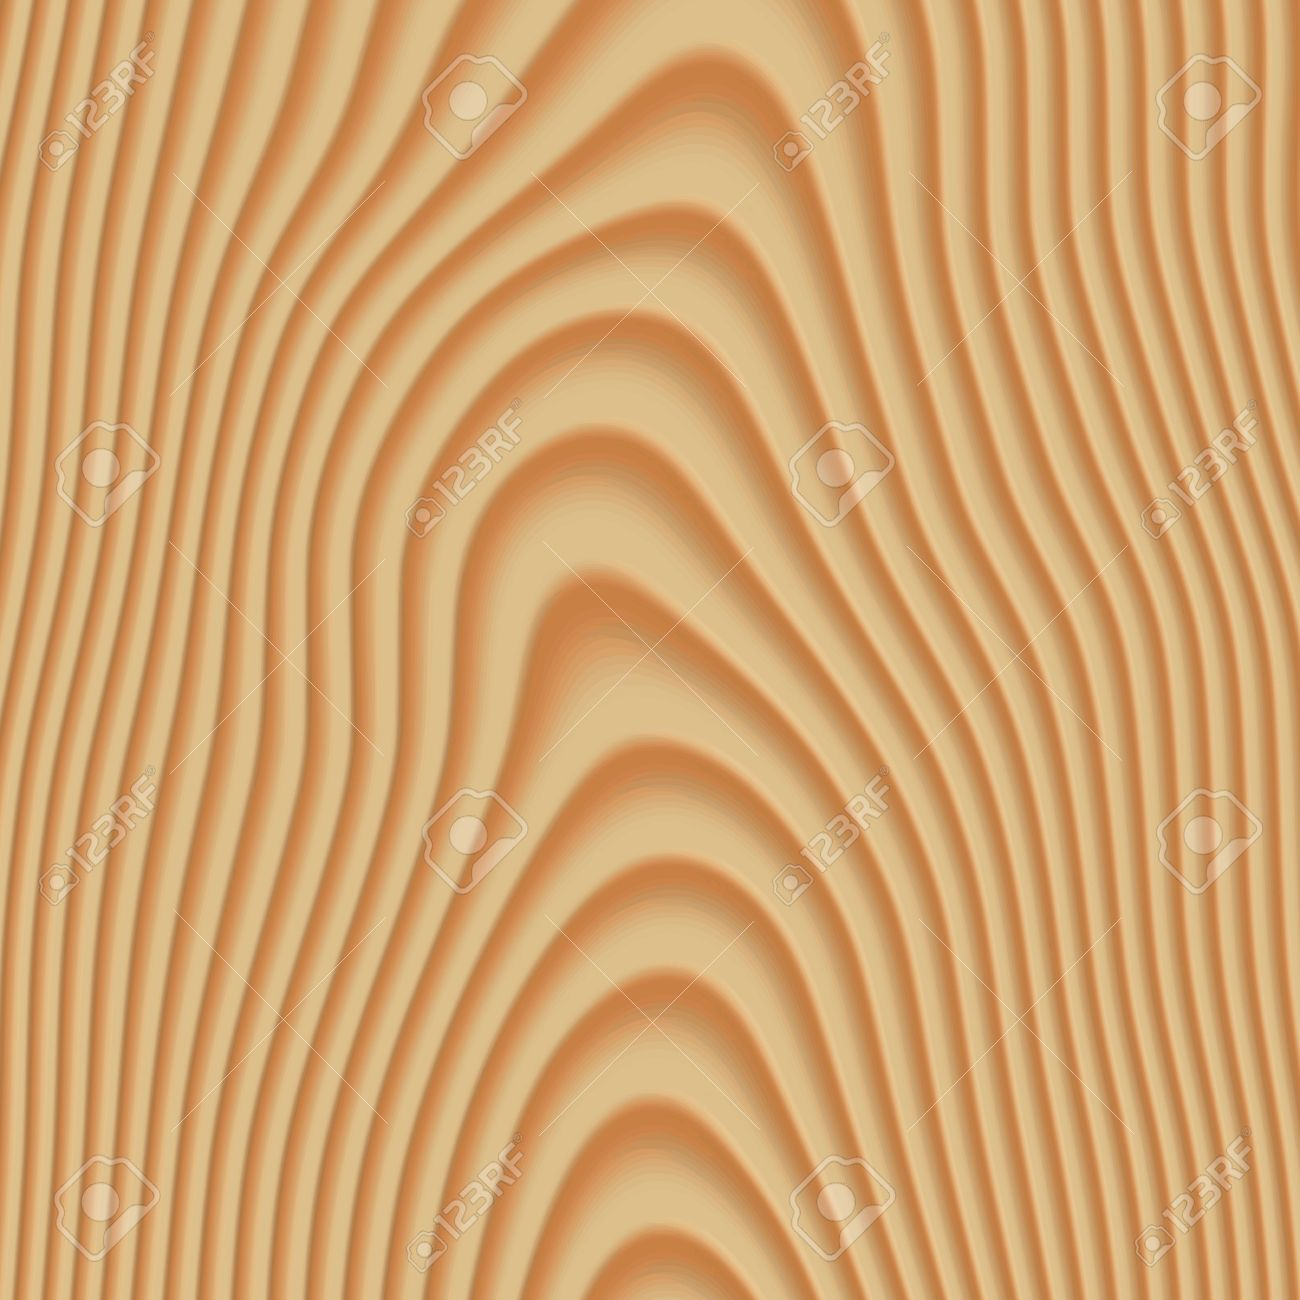 Wood Texture Background - Vector Royalty Free Cliparts, Vectors ...